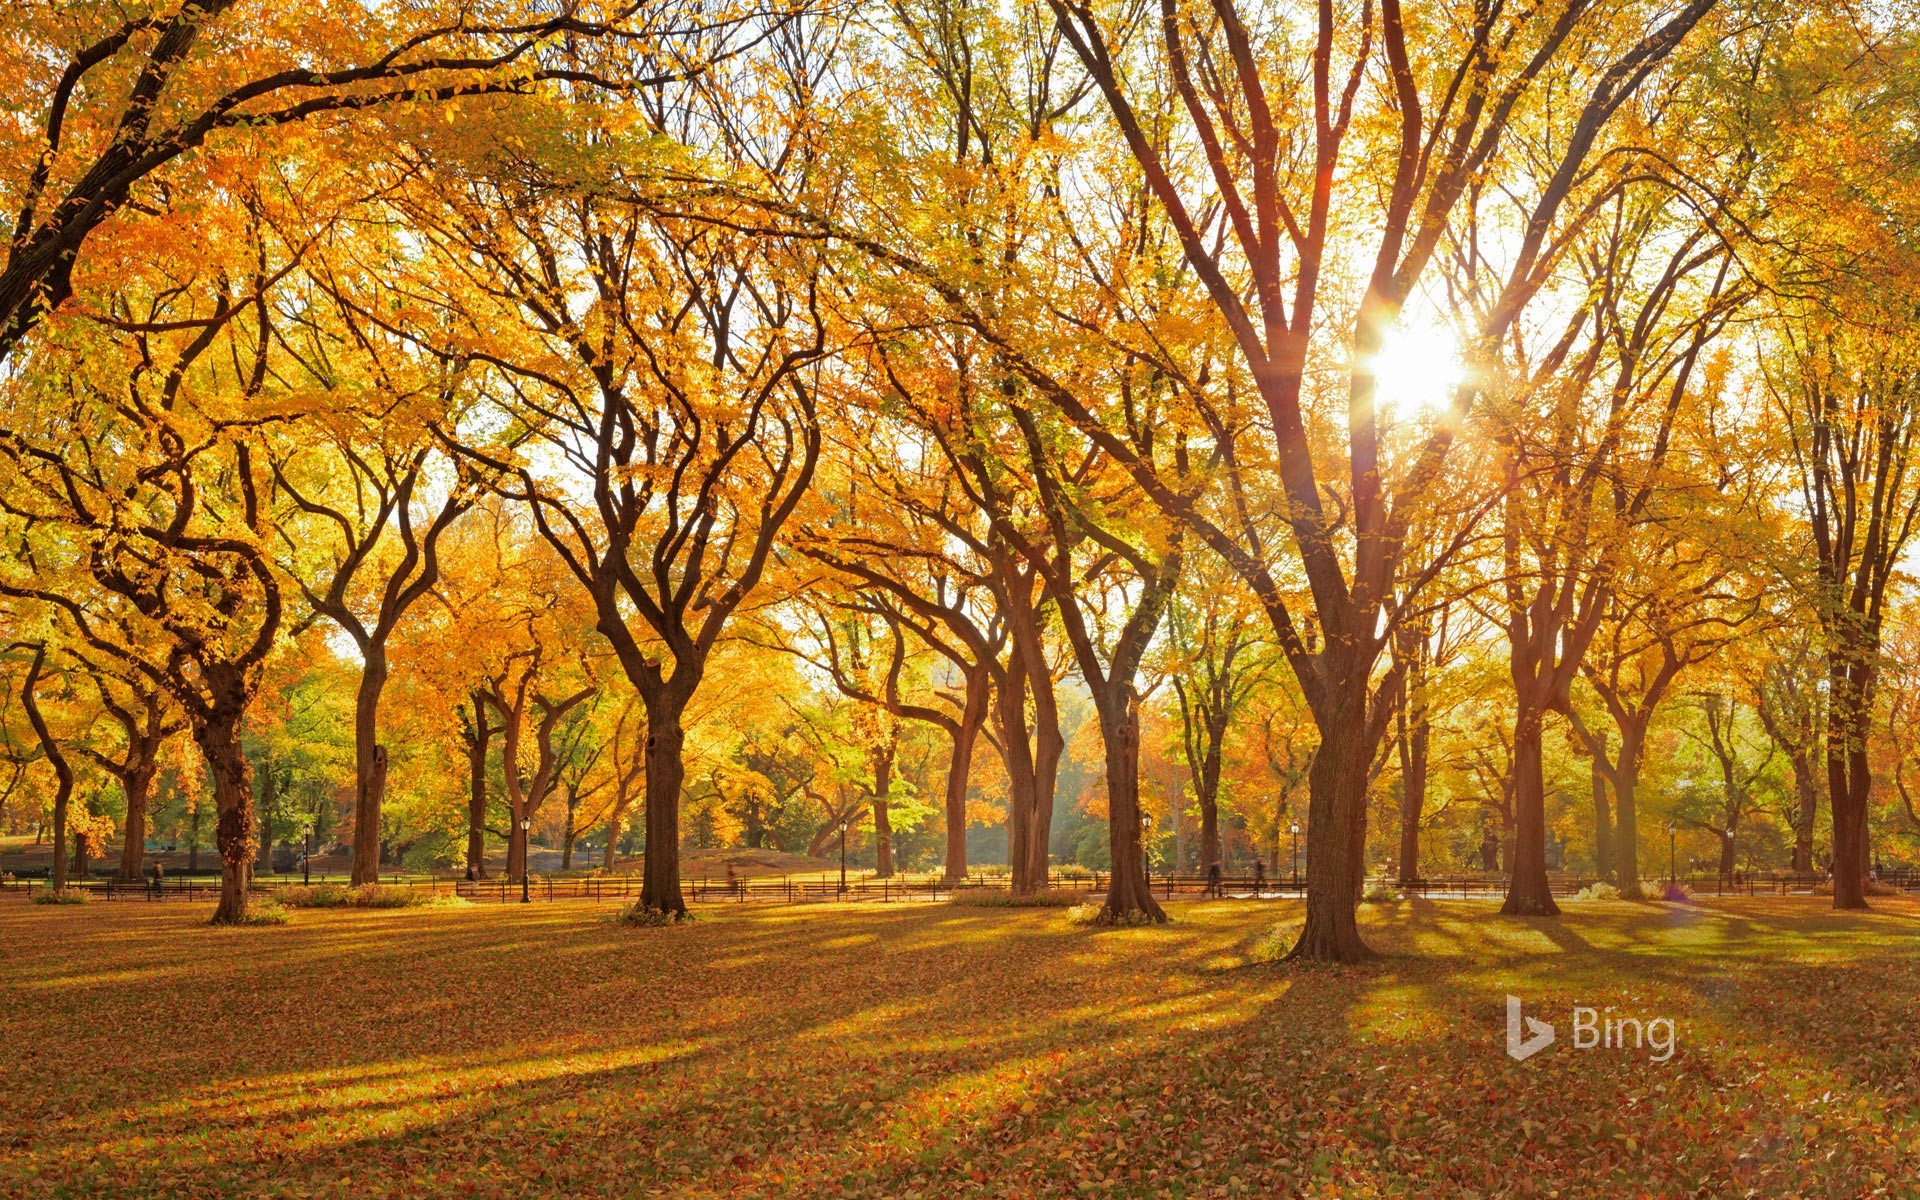 A grove of American elm trees at Central Park's Mall, New York City